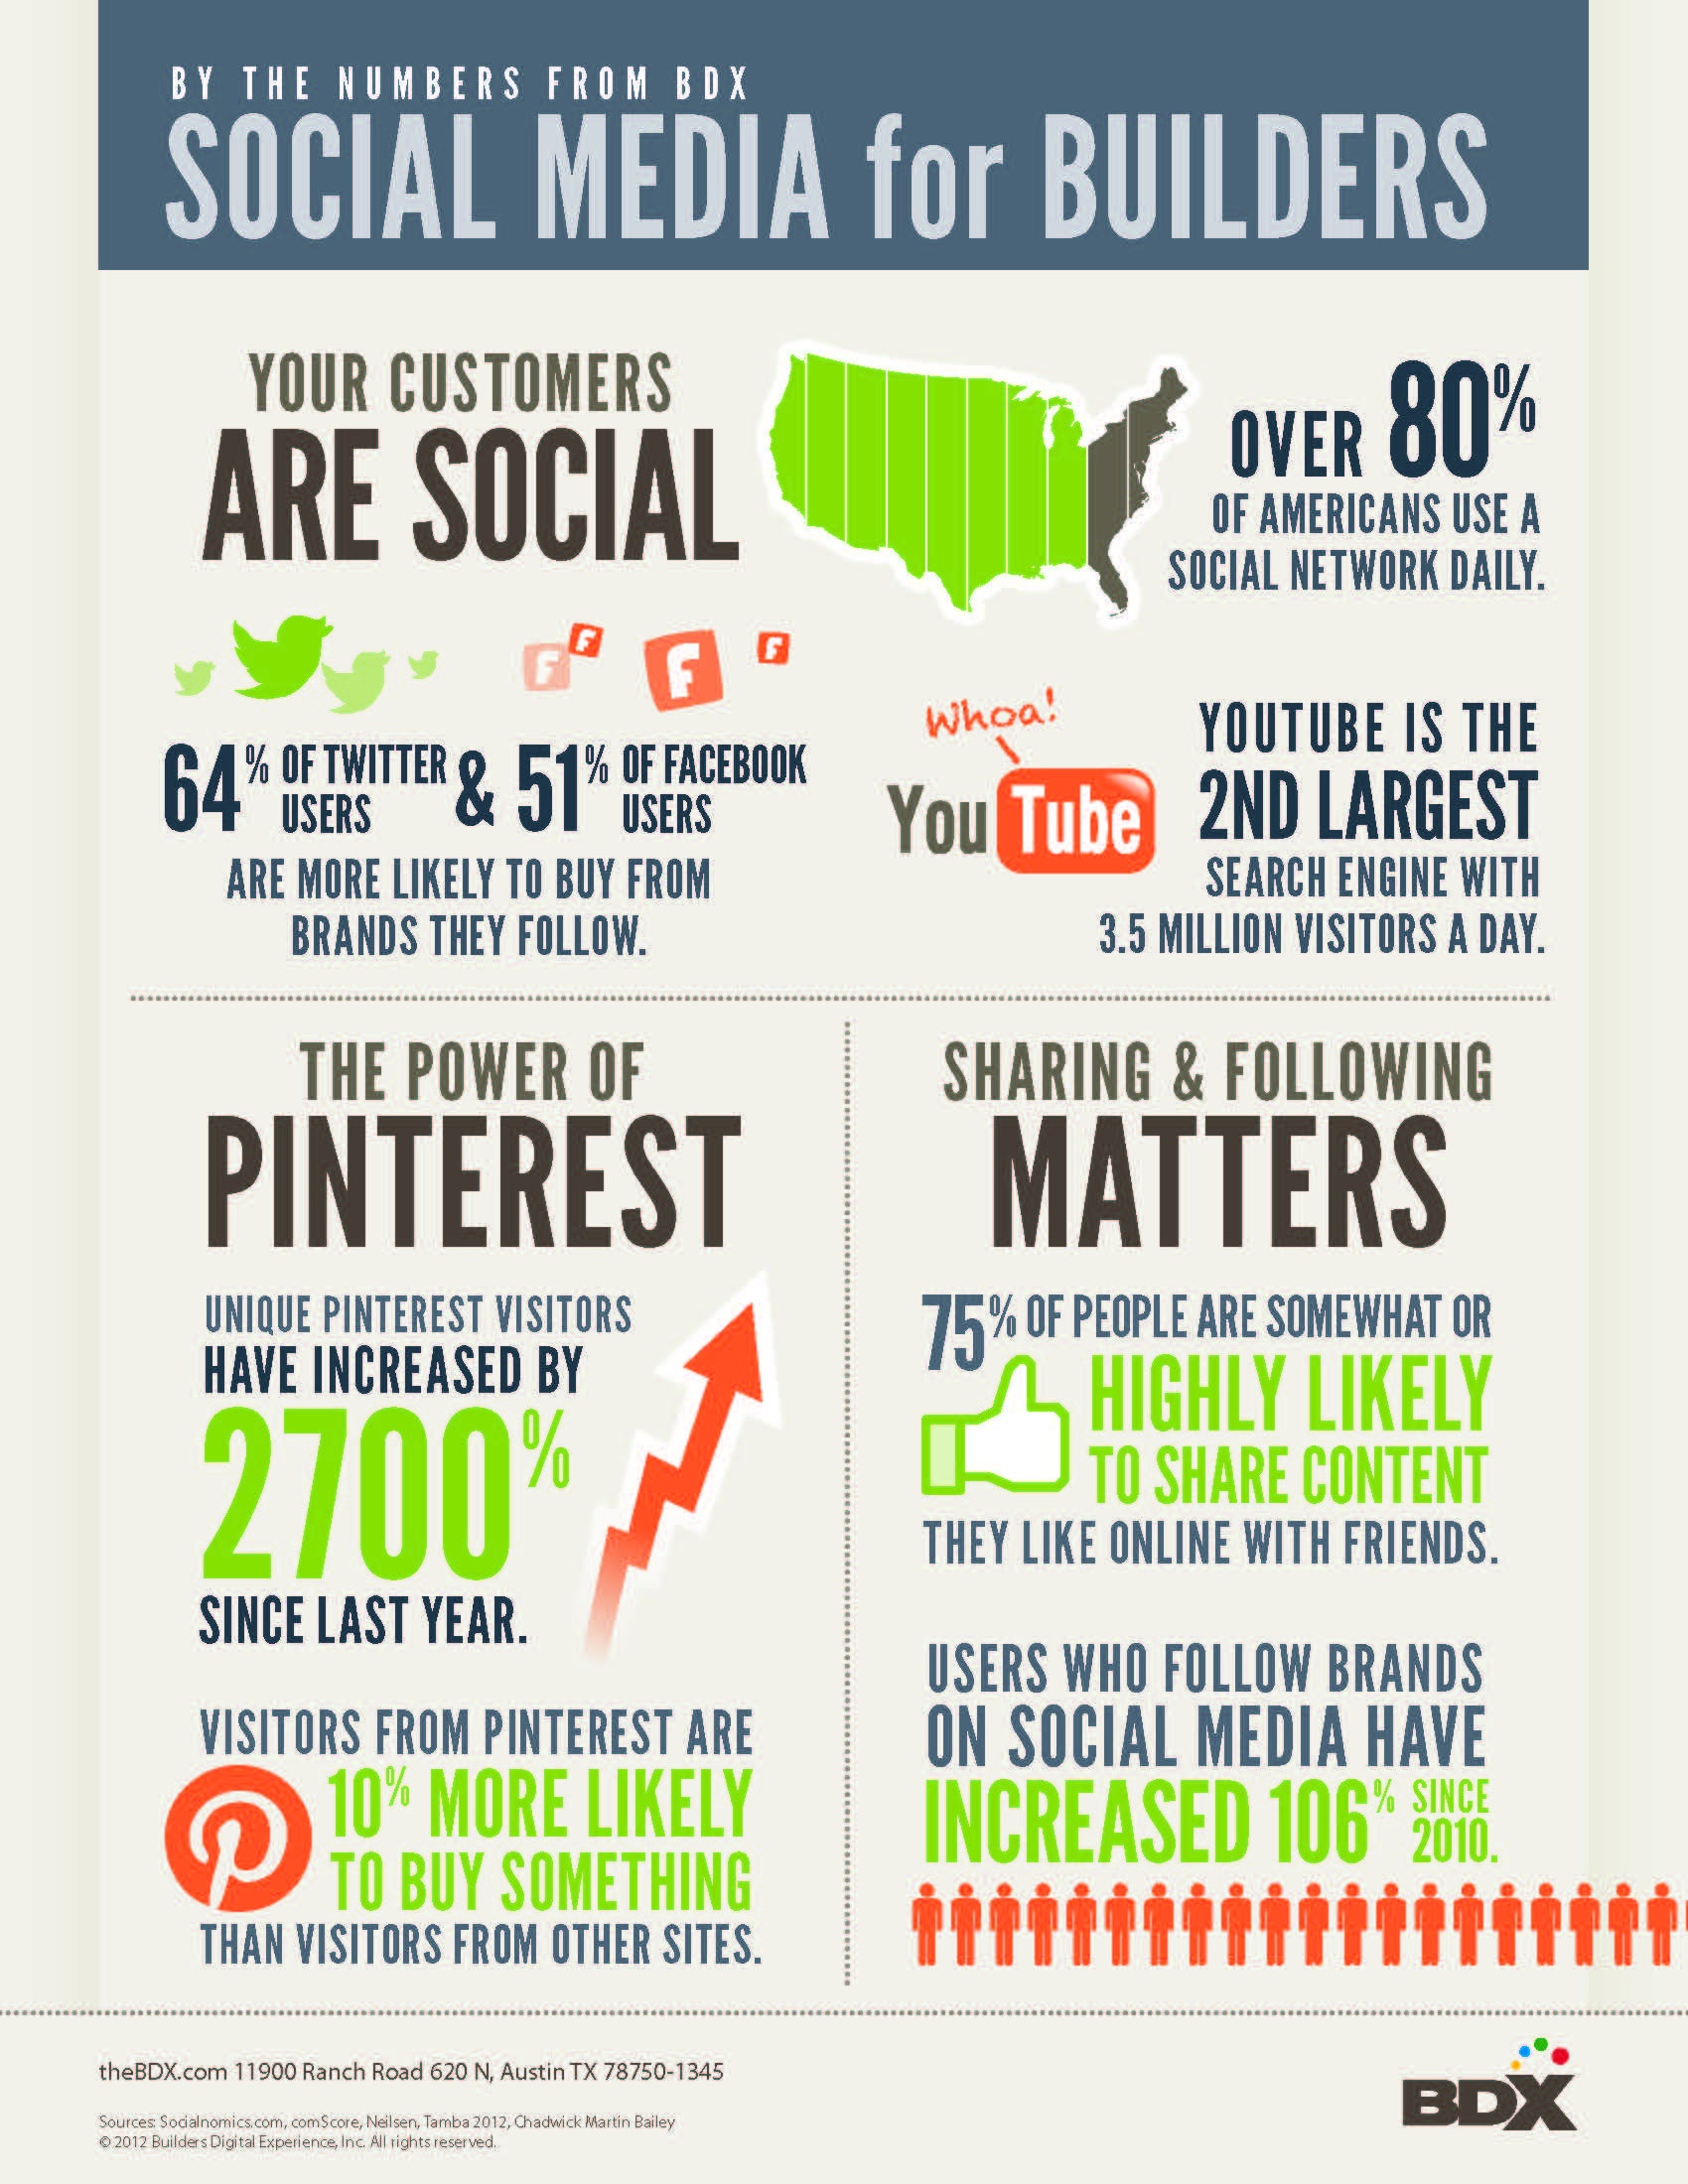 Infographic with techiques and tips on social media for homebuilders.